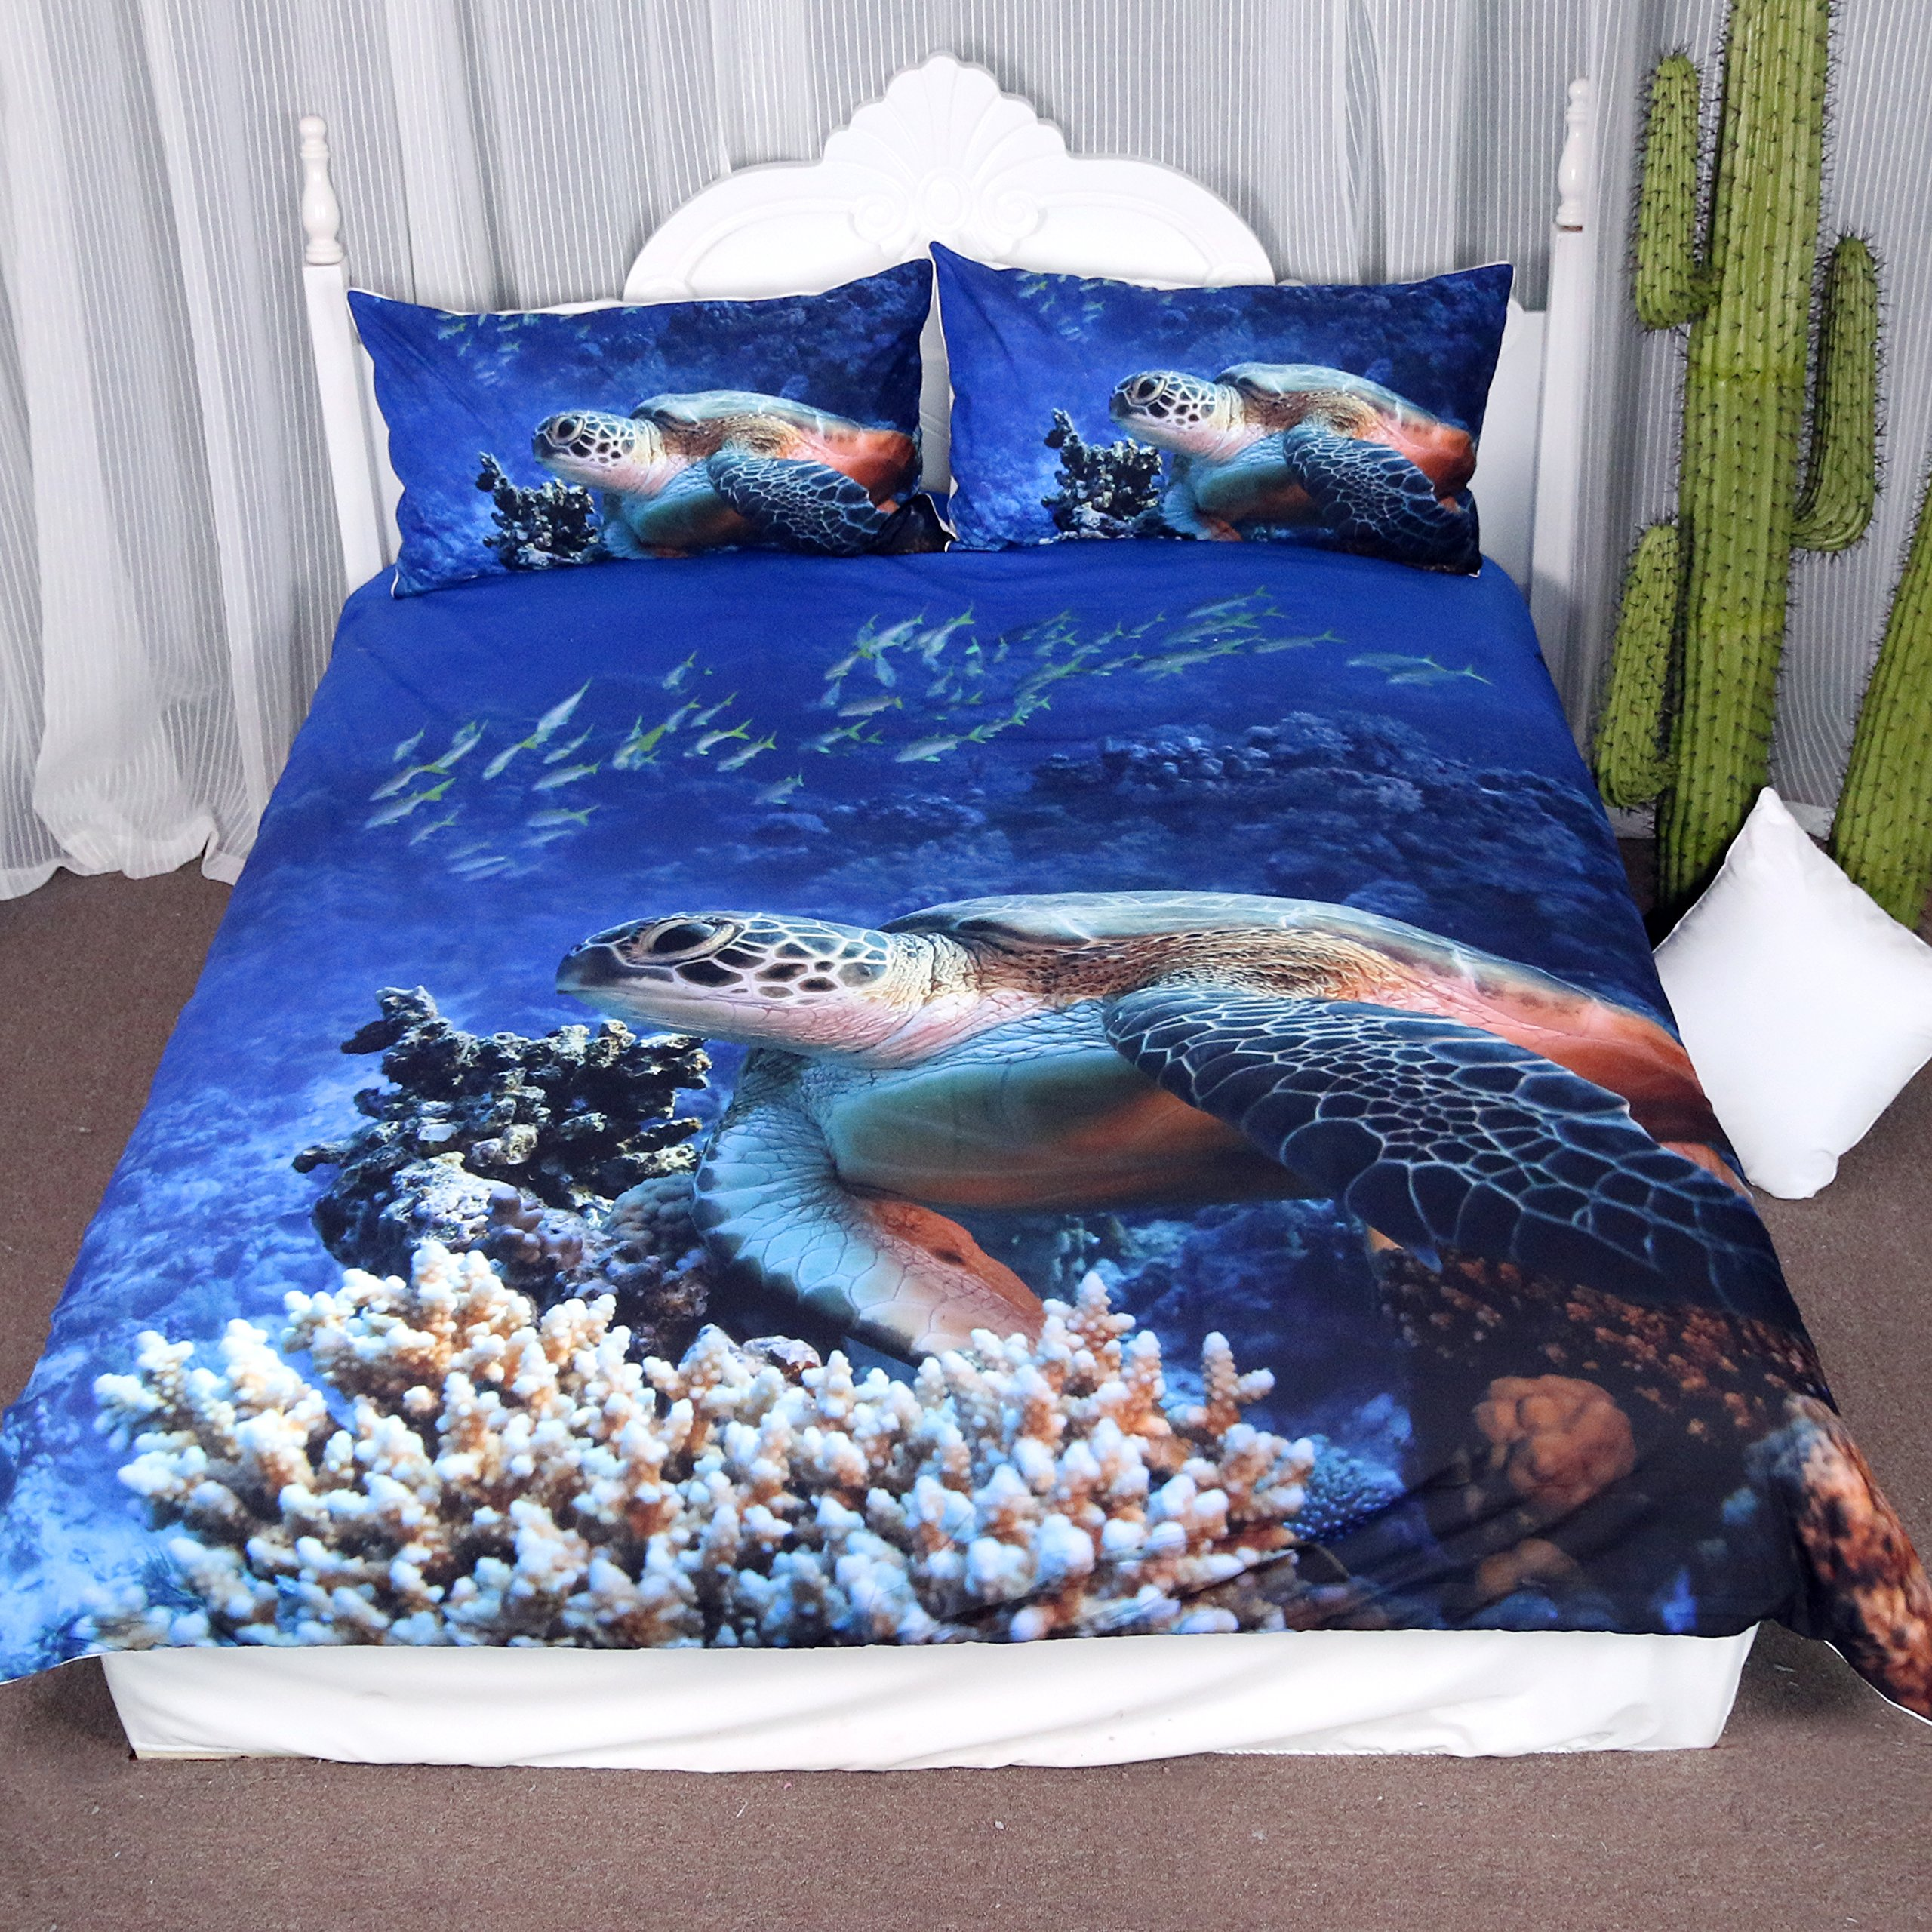 Arightex Turtle Bedding Sea Blue Duvet Cover Ocean 3d Corals Fishes Print for Teens Boys and Girls Sealife 3-Piece Quilt Set (Twin)